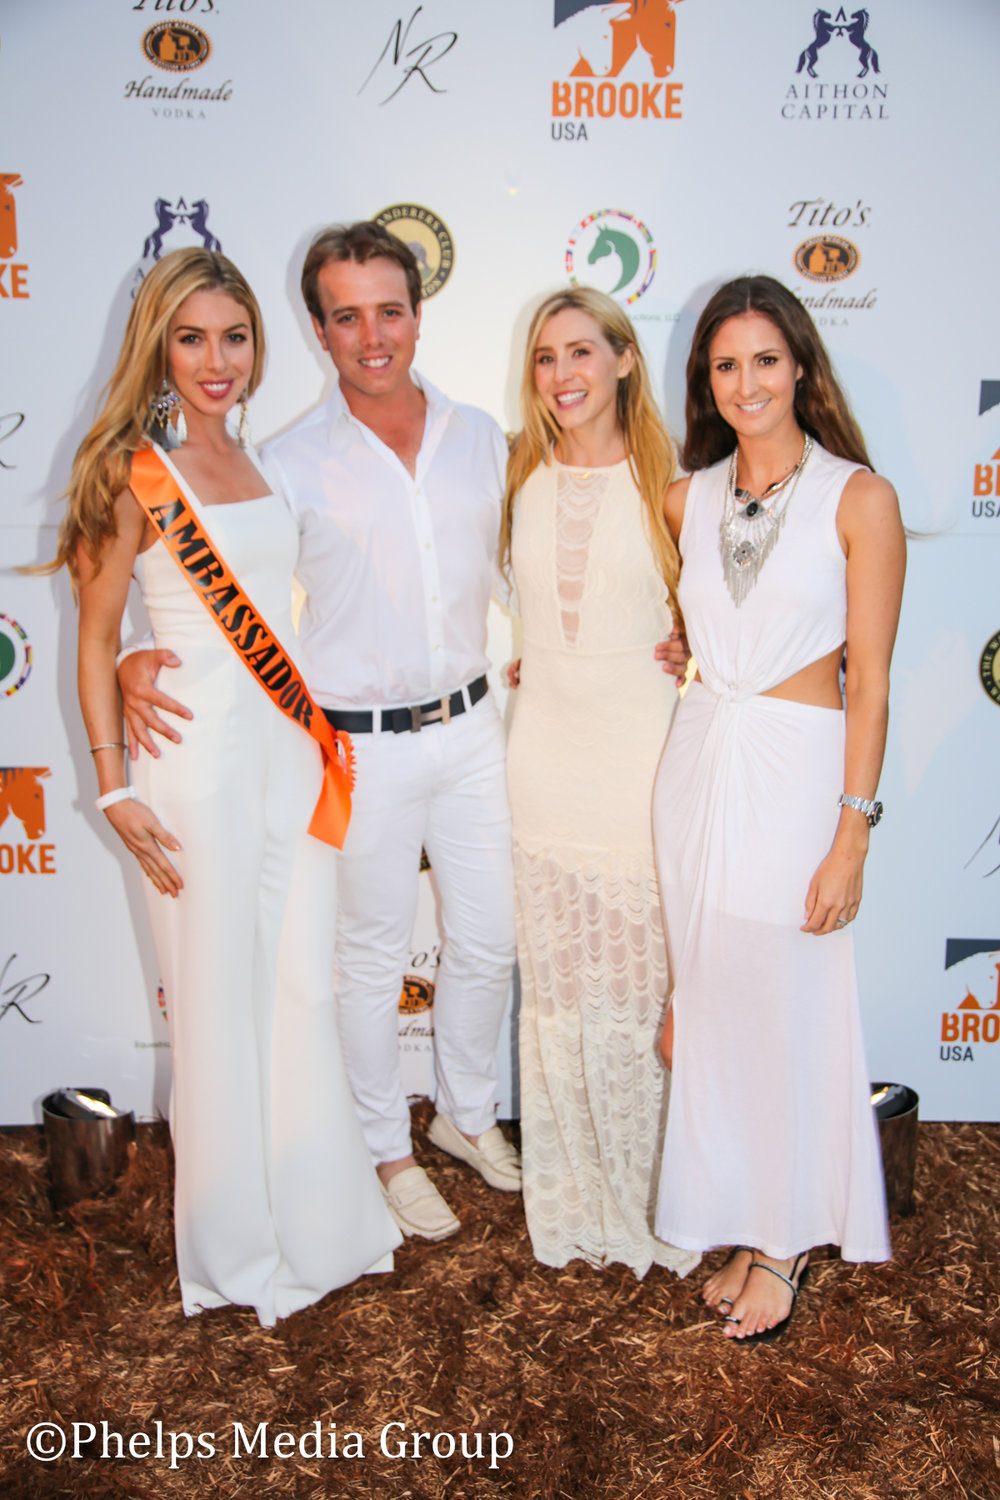 Hannah Selleck, Alex Hamer, Paige Bellissimo and Paige Pepa; Nic Roldan's 2nd Annual Sunset Polo & White Party, FL, by Phelps Media (1).jpg